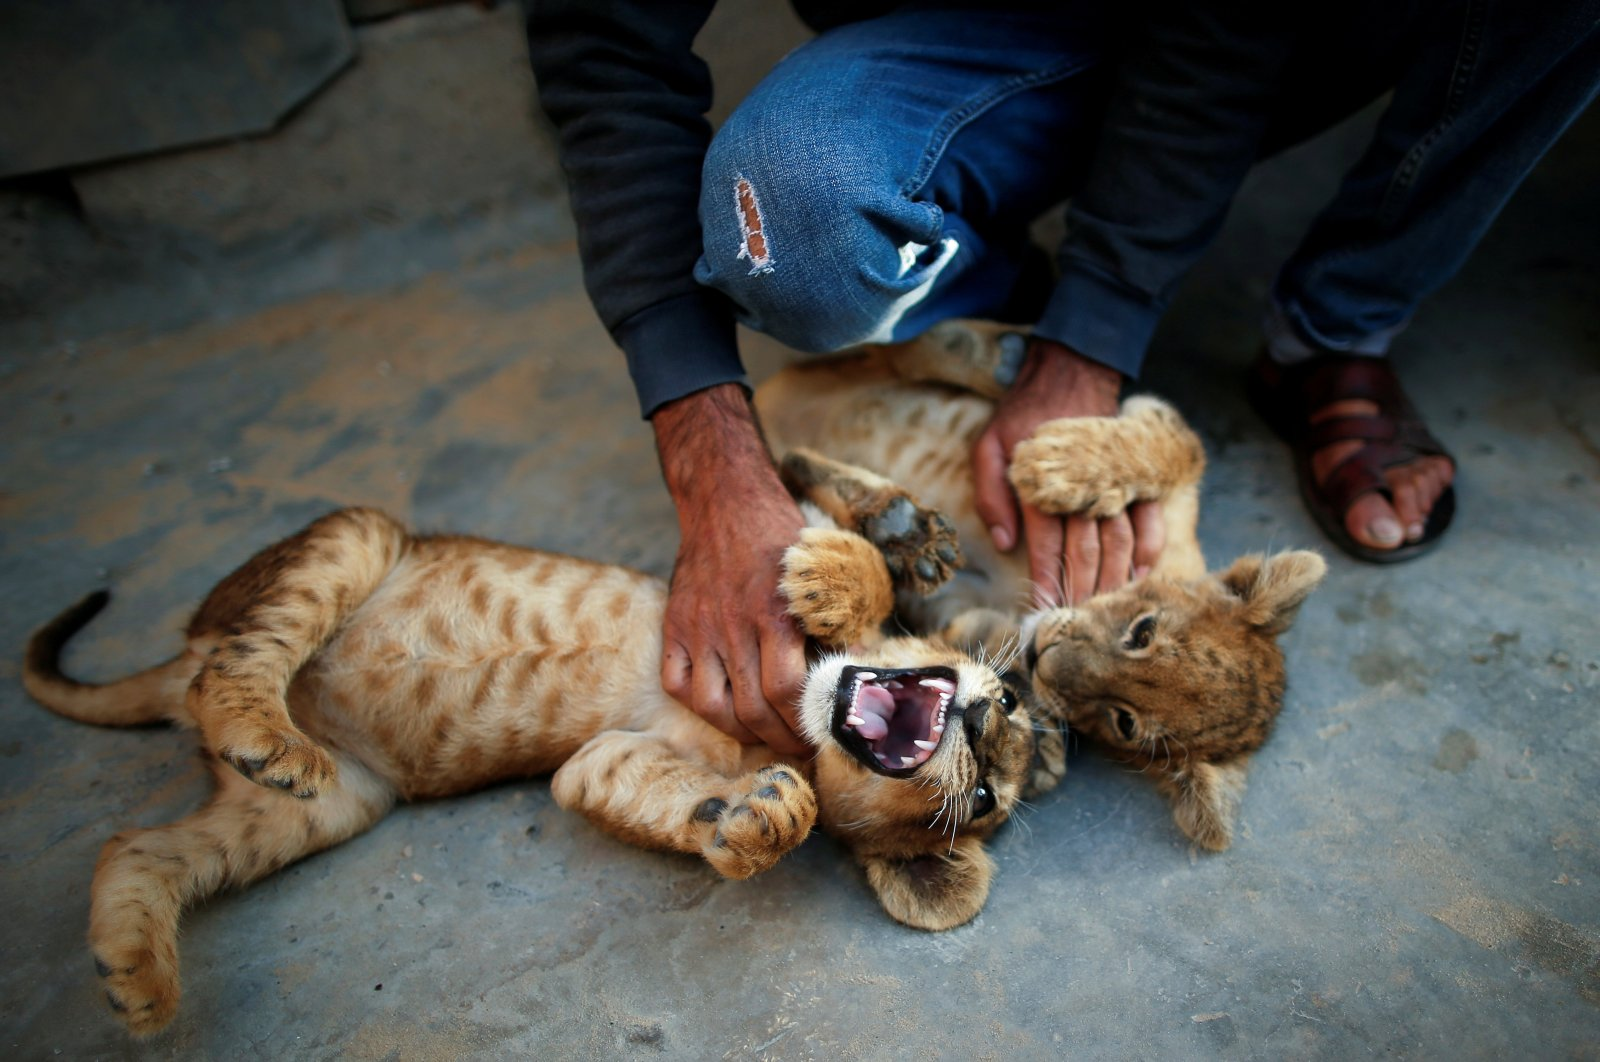 Palestinian man Naseem Abu Jamea plays with his pet lion cubs that he keeps on his house rooftop after buying them from a local zoo, in Khan Younis, in the southern Gaza Strip, Nov. 10, 2020. (Reuters Photo)